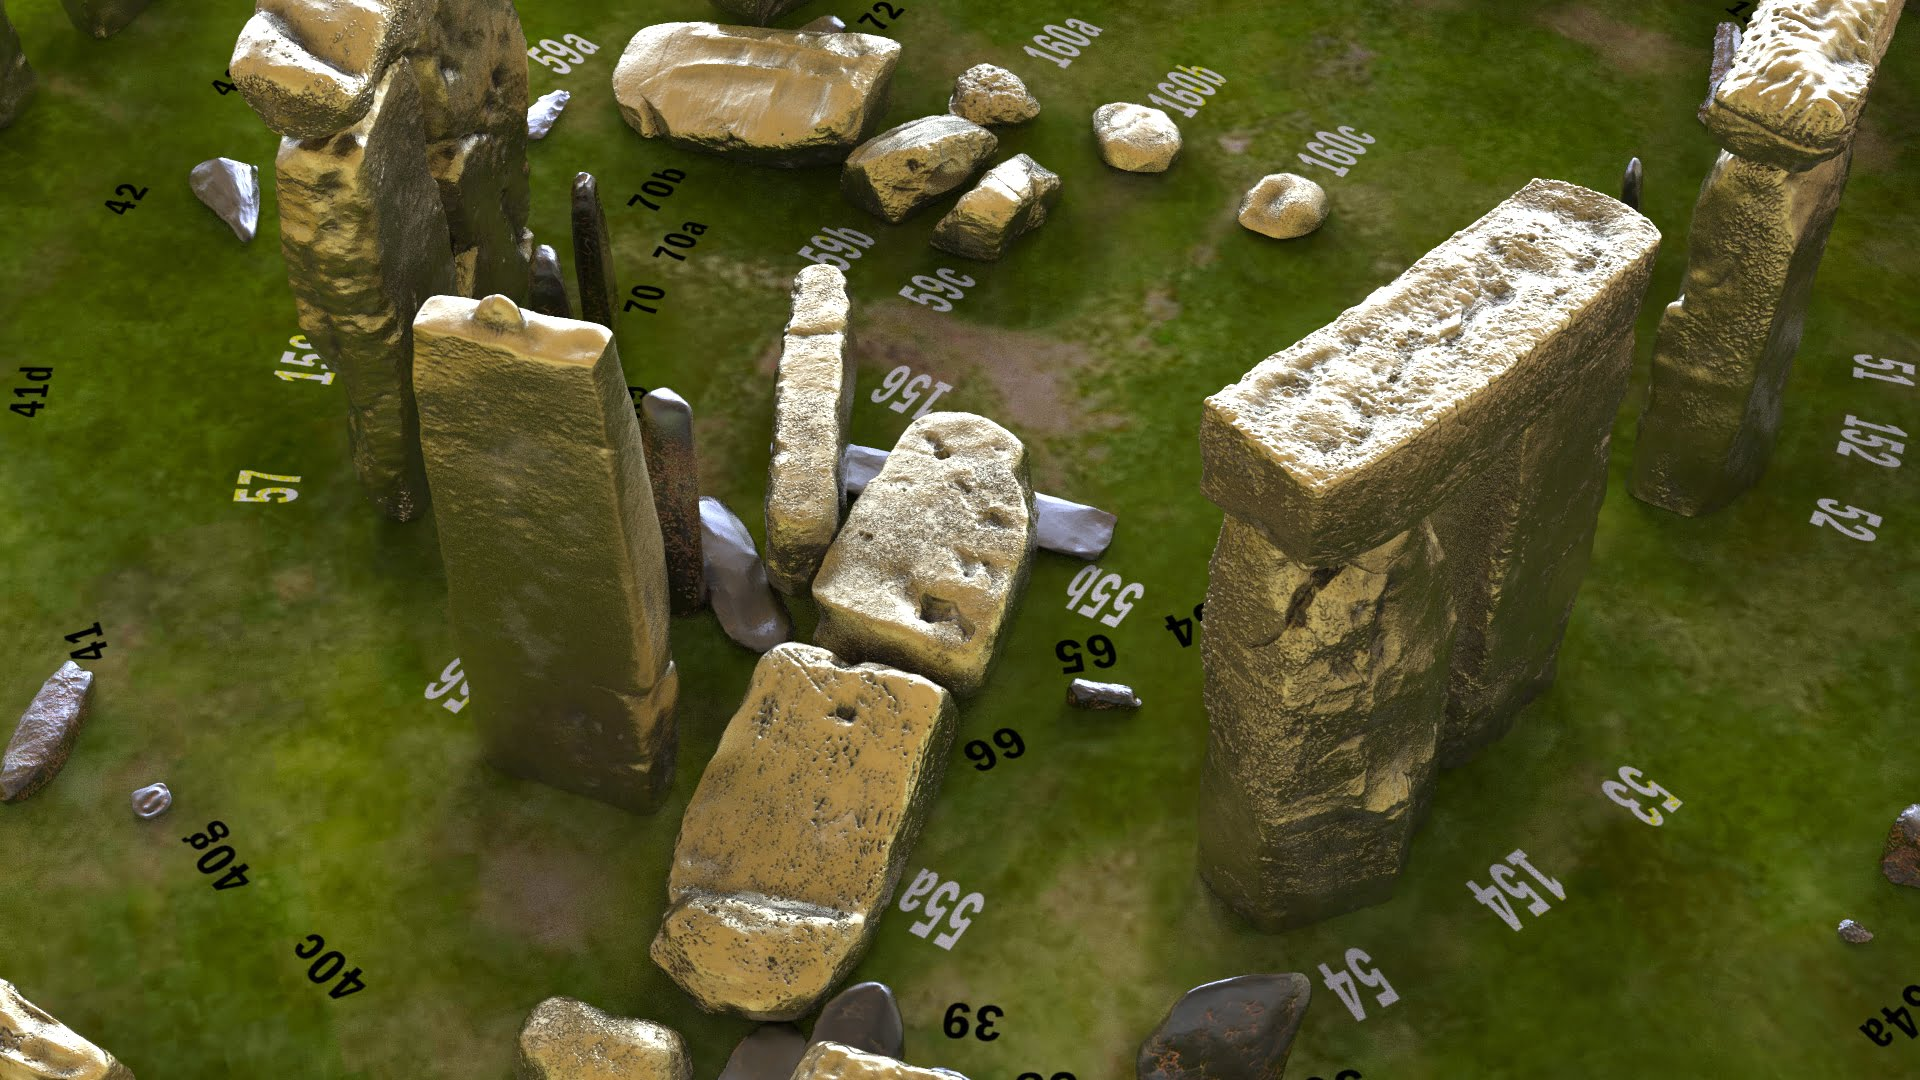 Buy Stonehenge Models: Aged brass Stonehenge replica models at 200th scale 195 x 195 mm or 7.7 x 7.7 square on parch marked grass map with numbered stones accurate and highly detailed.59  - 200th scale pick n mix -